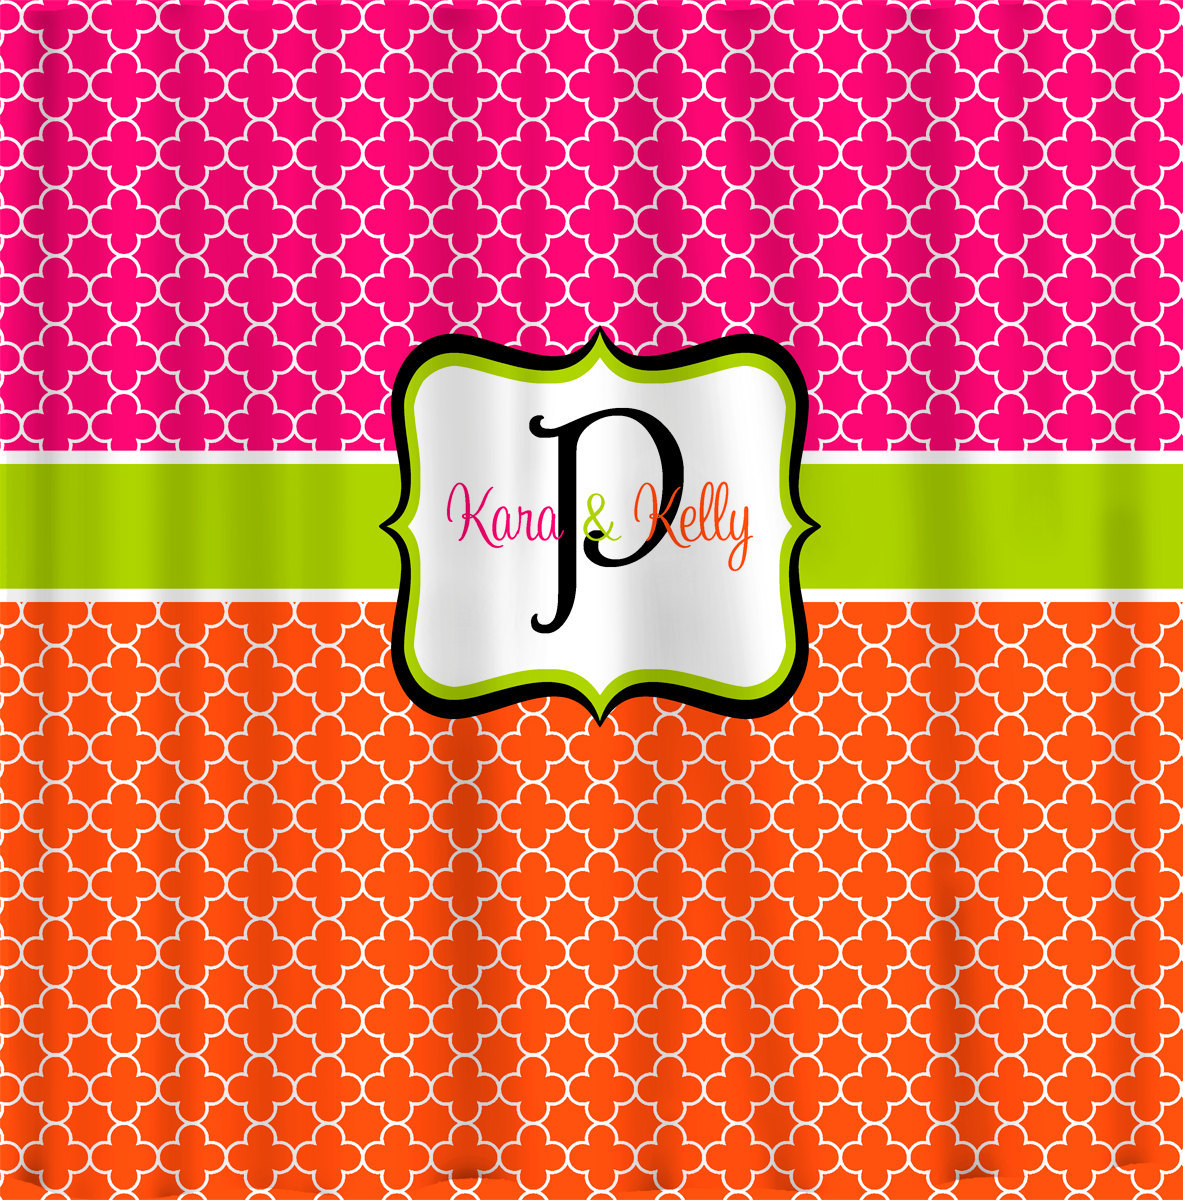 Custom Personalized Quatrefoil Shower Curtain - With Peace Comb option, Hot Pink image 2